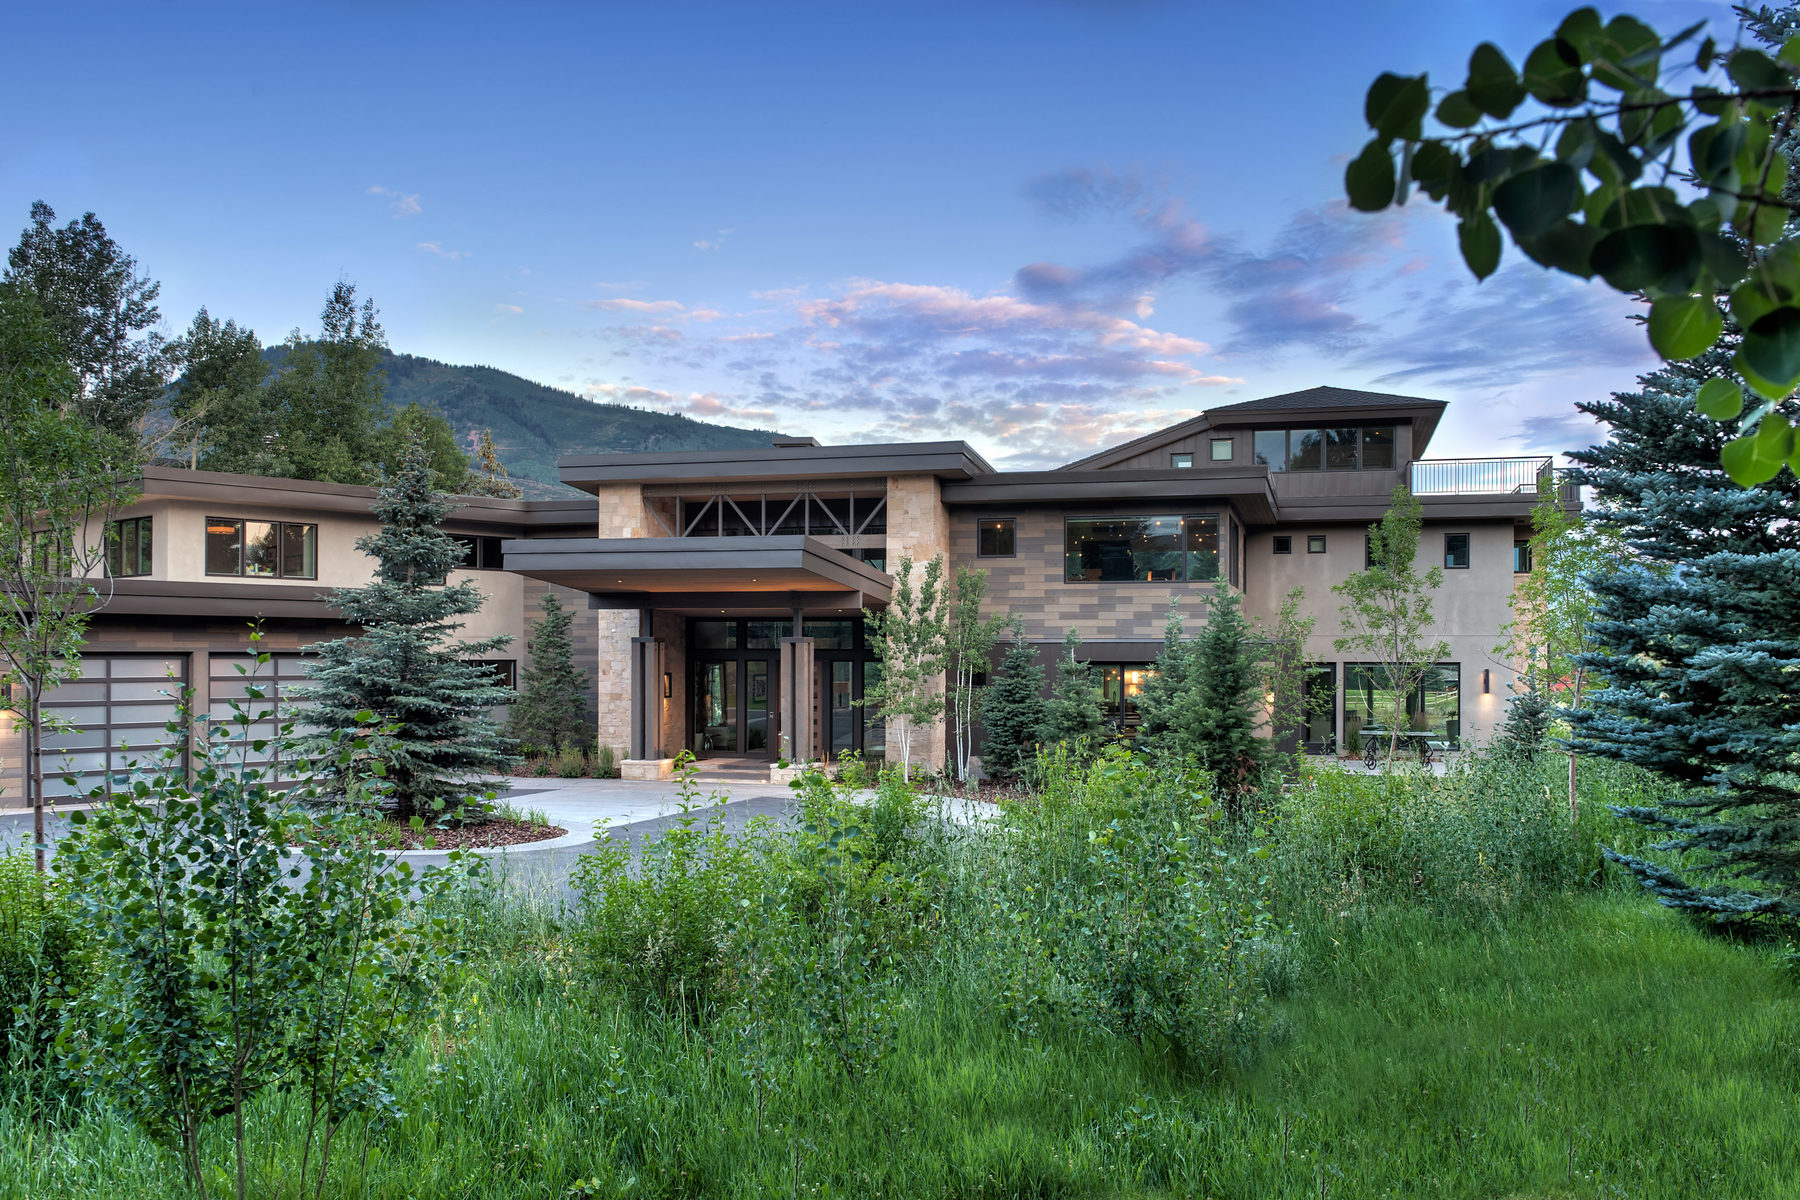 Casa Unifamiliar por un Venta en Exquisite Contemporary Estate 1334 Lucky John Dr Park City, Utah, 84060 Estados Unidos